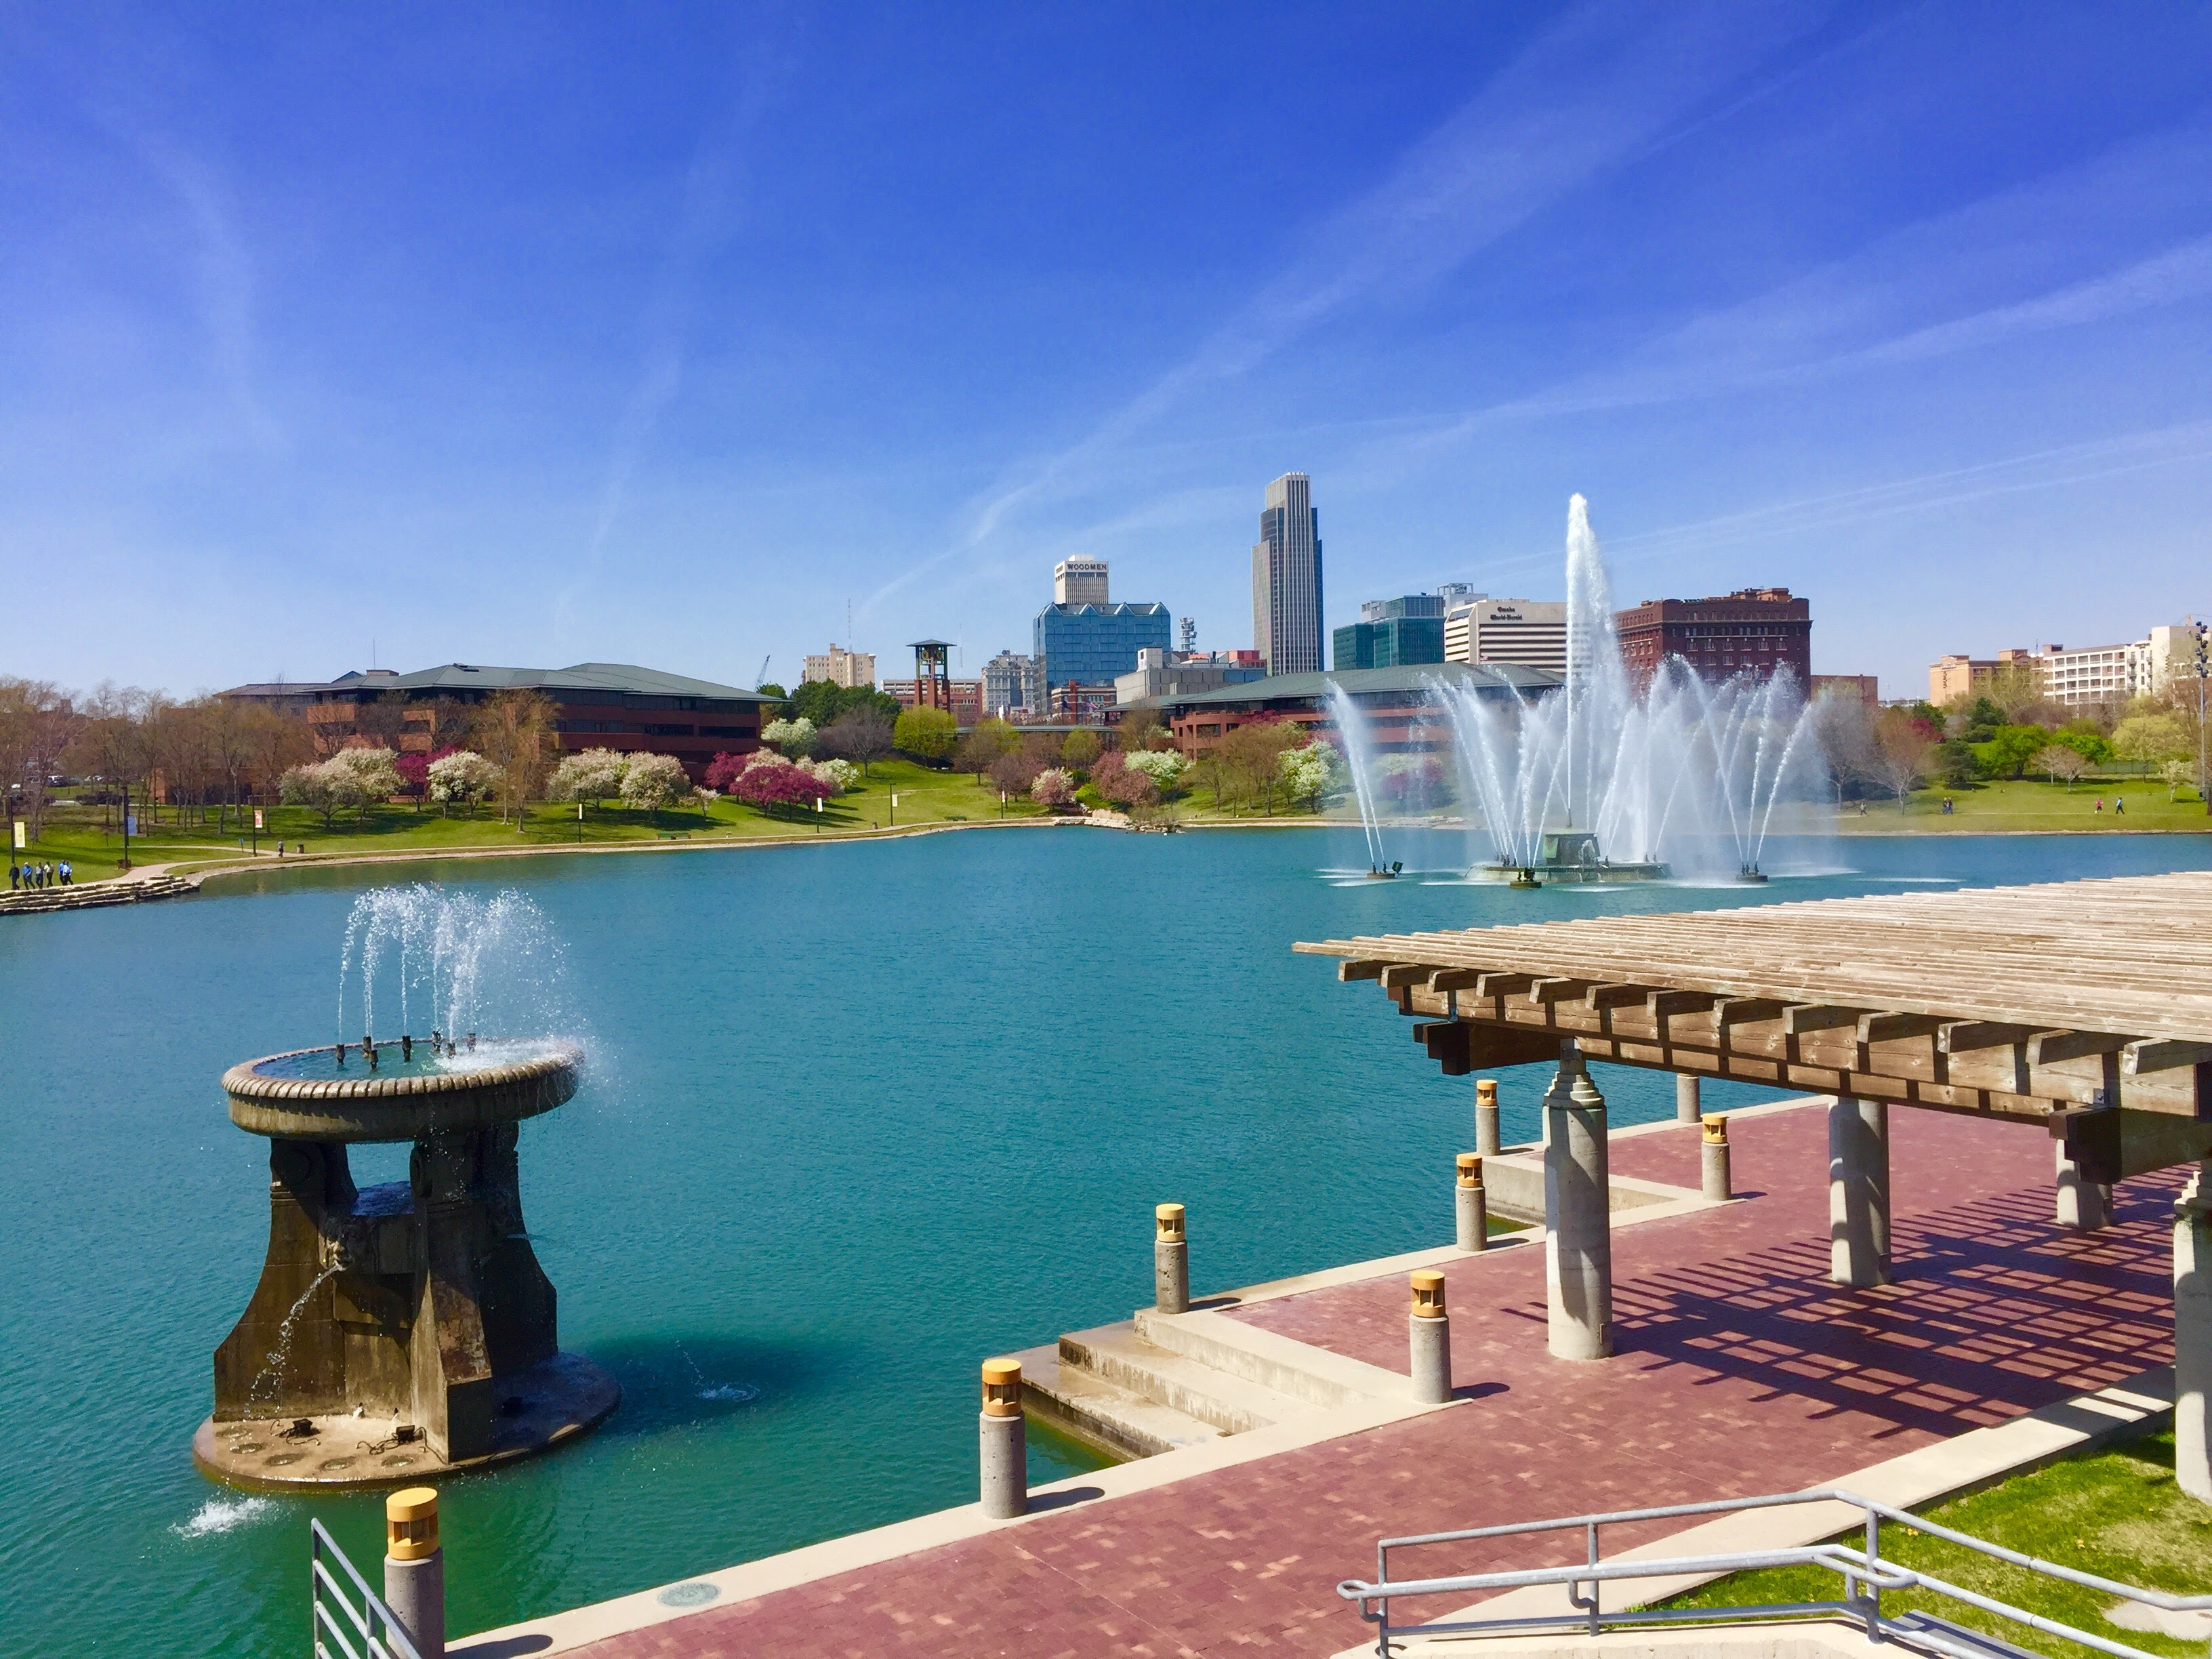 Fountains at Heartland of America Park in Omaha Nebraska